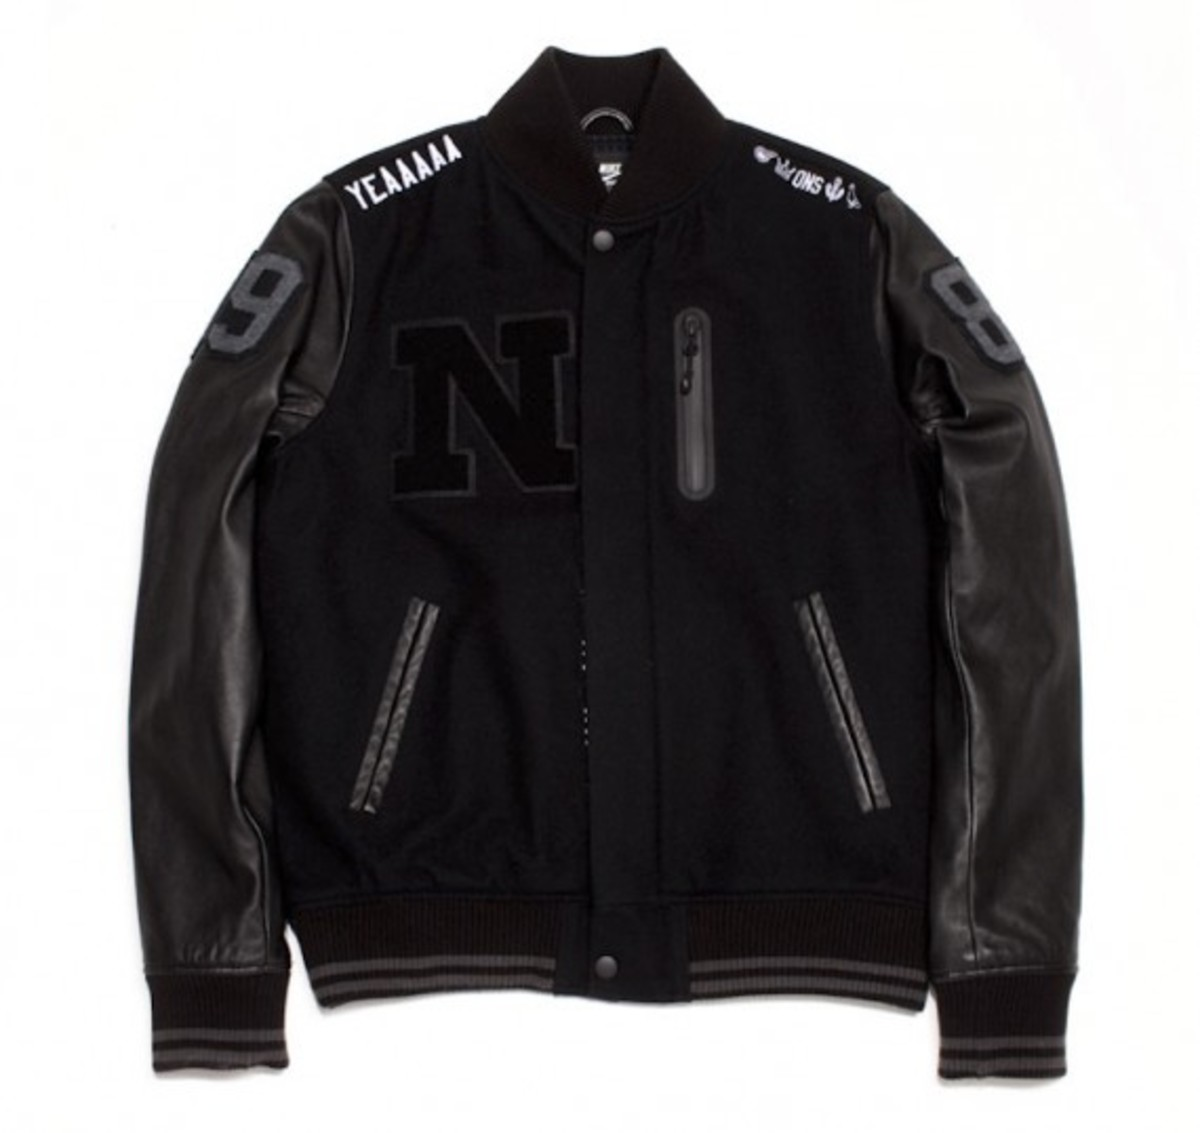 nike-stadium-nigel-sylvester-custom-destroyer-jkt-01